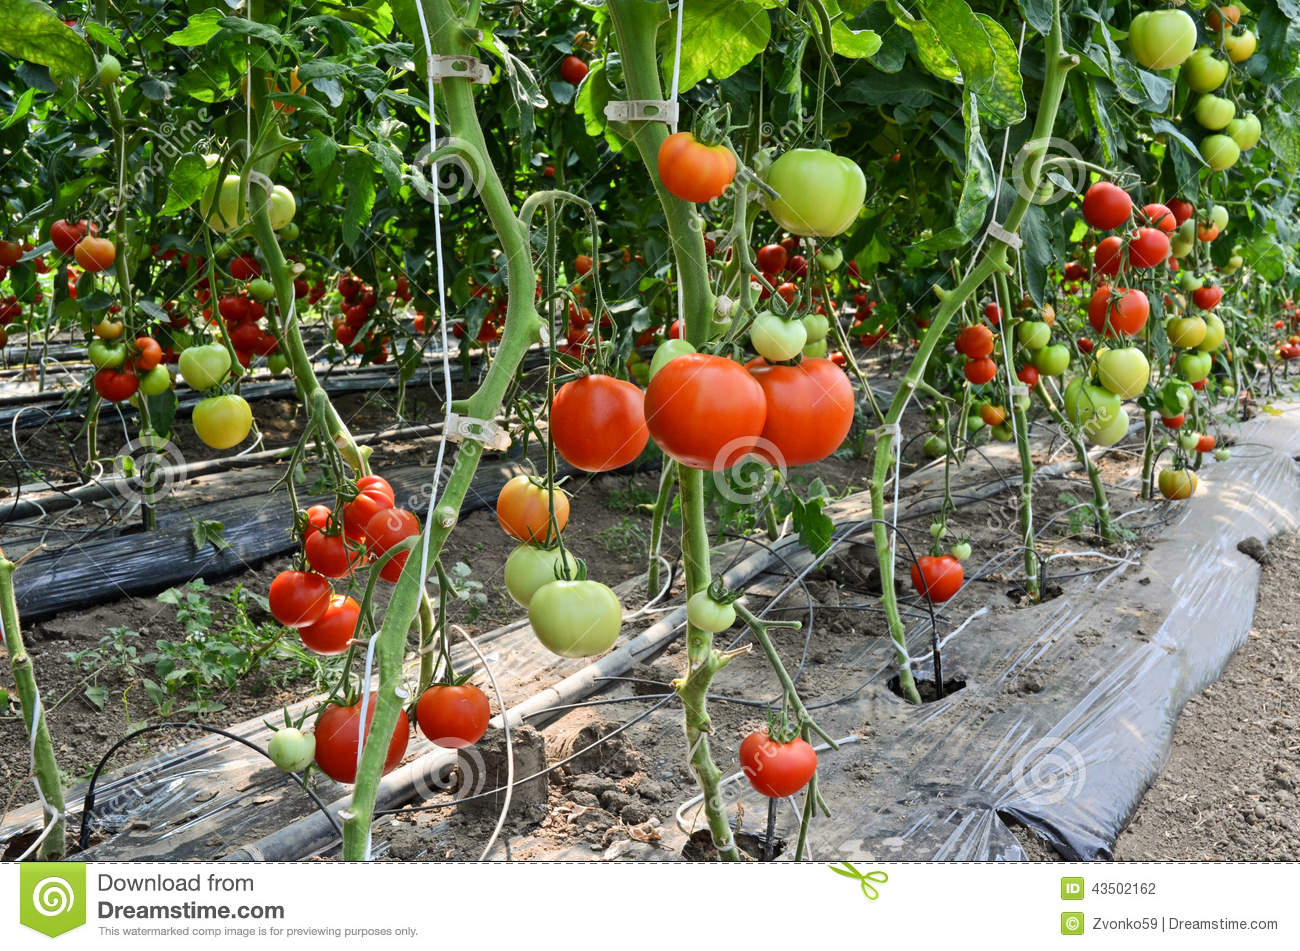 Growing vegetables in a greenhouse business plan